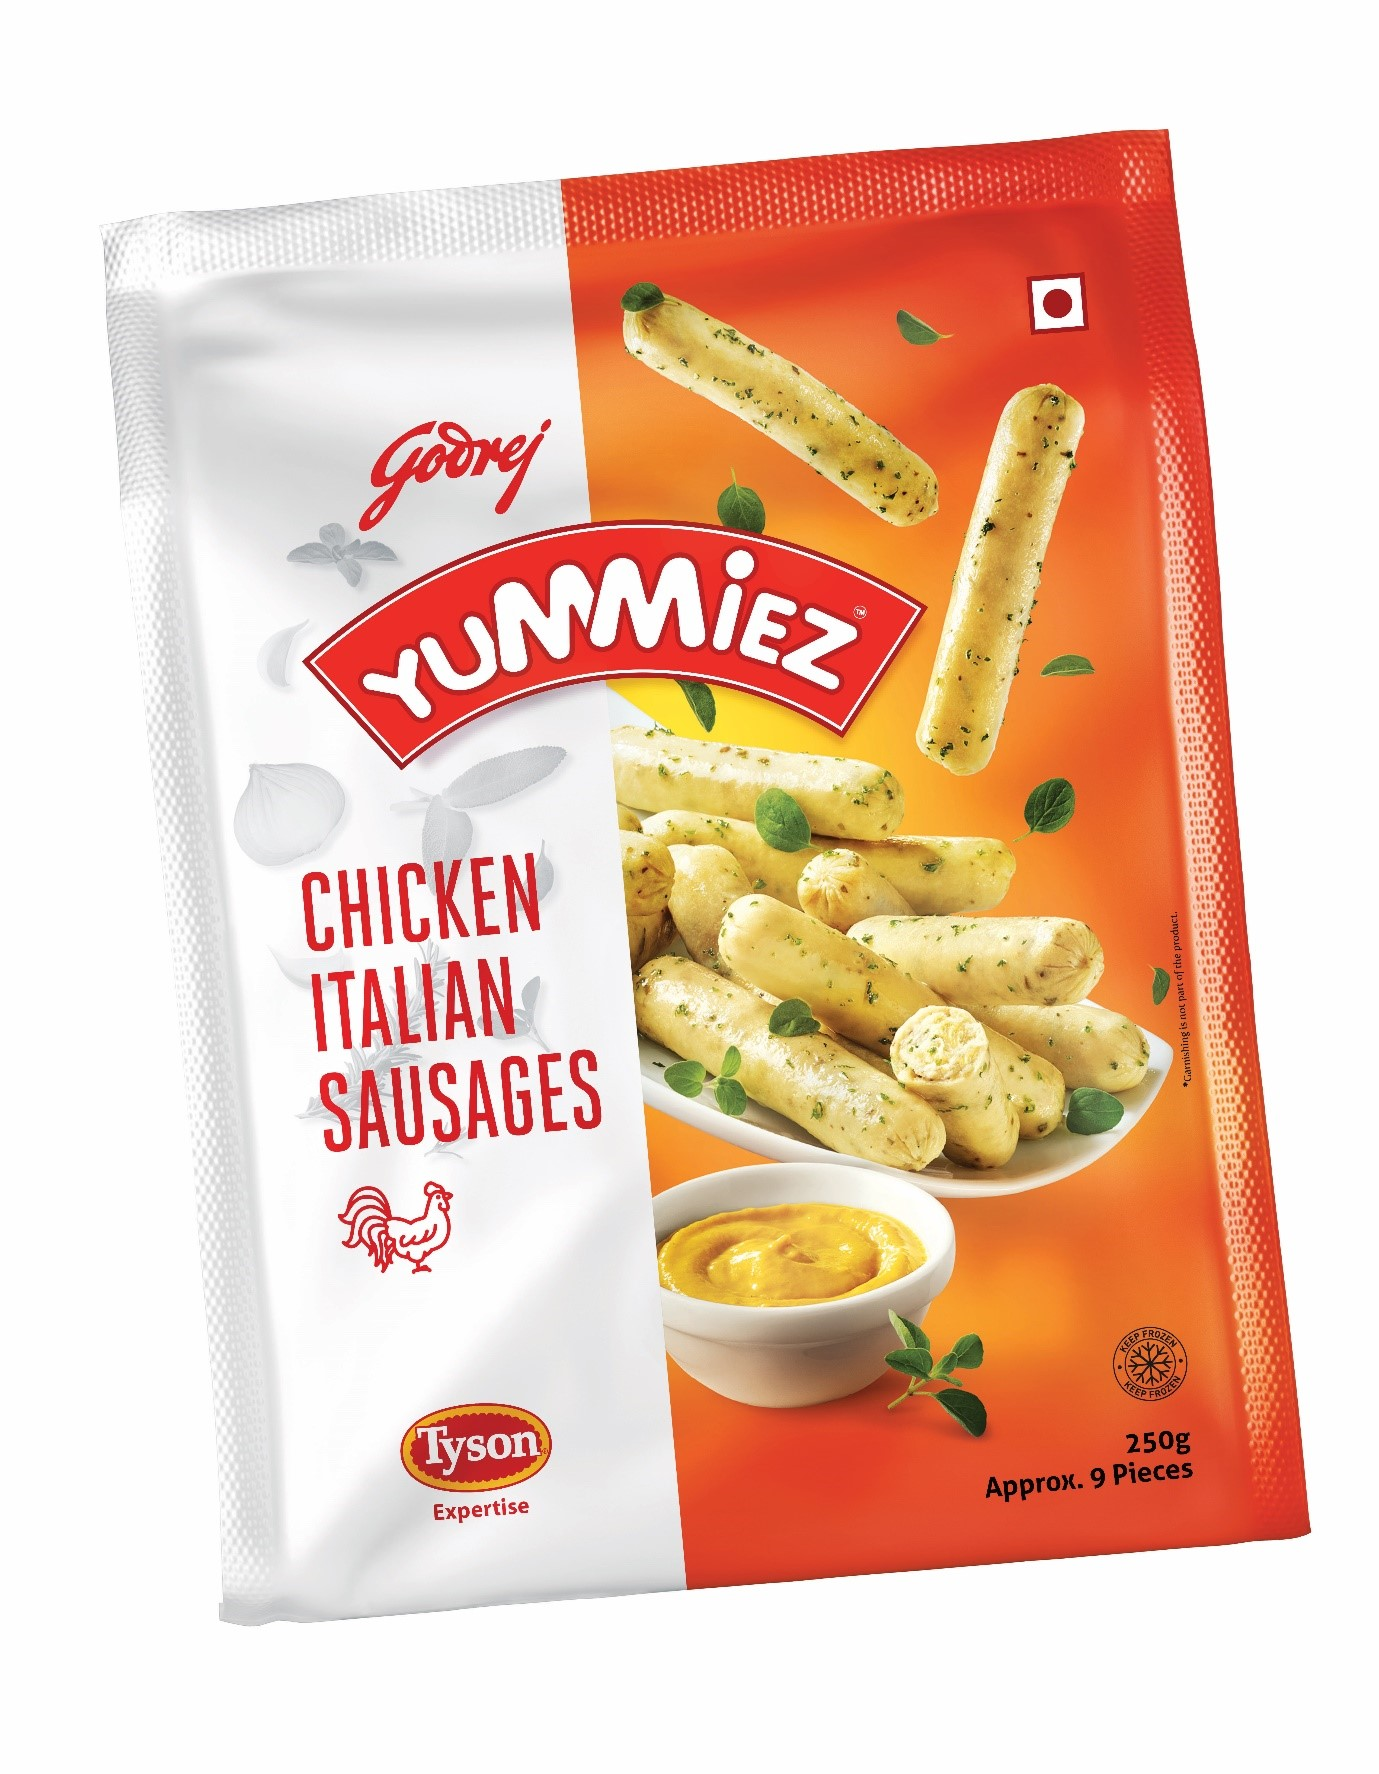 Yummiez Chicken Italian Sausages 250 g